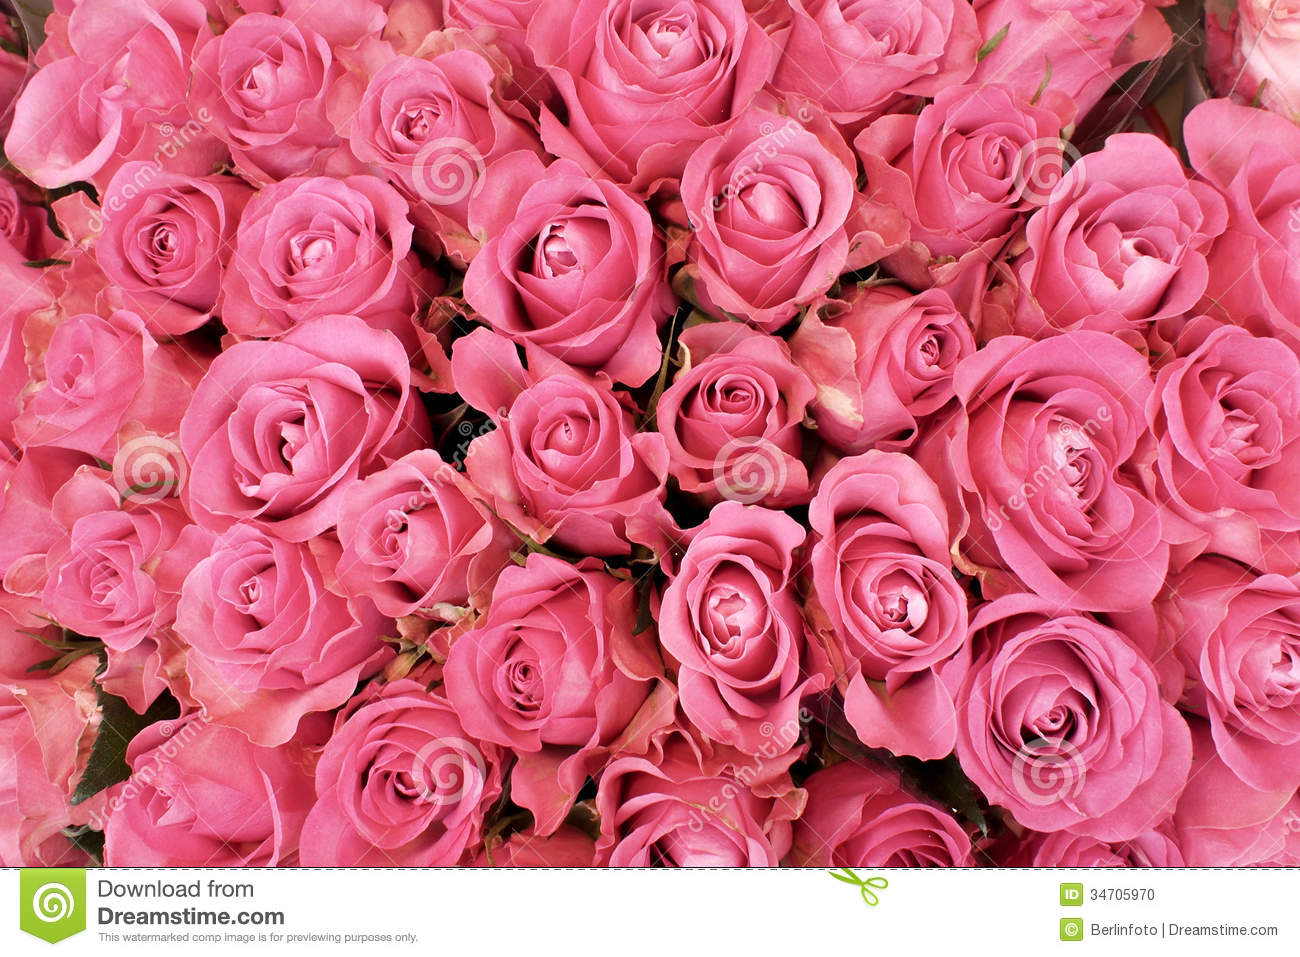 makeup valentine's day cards - Pink Roses Stock Image